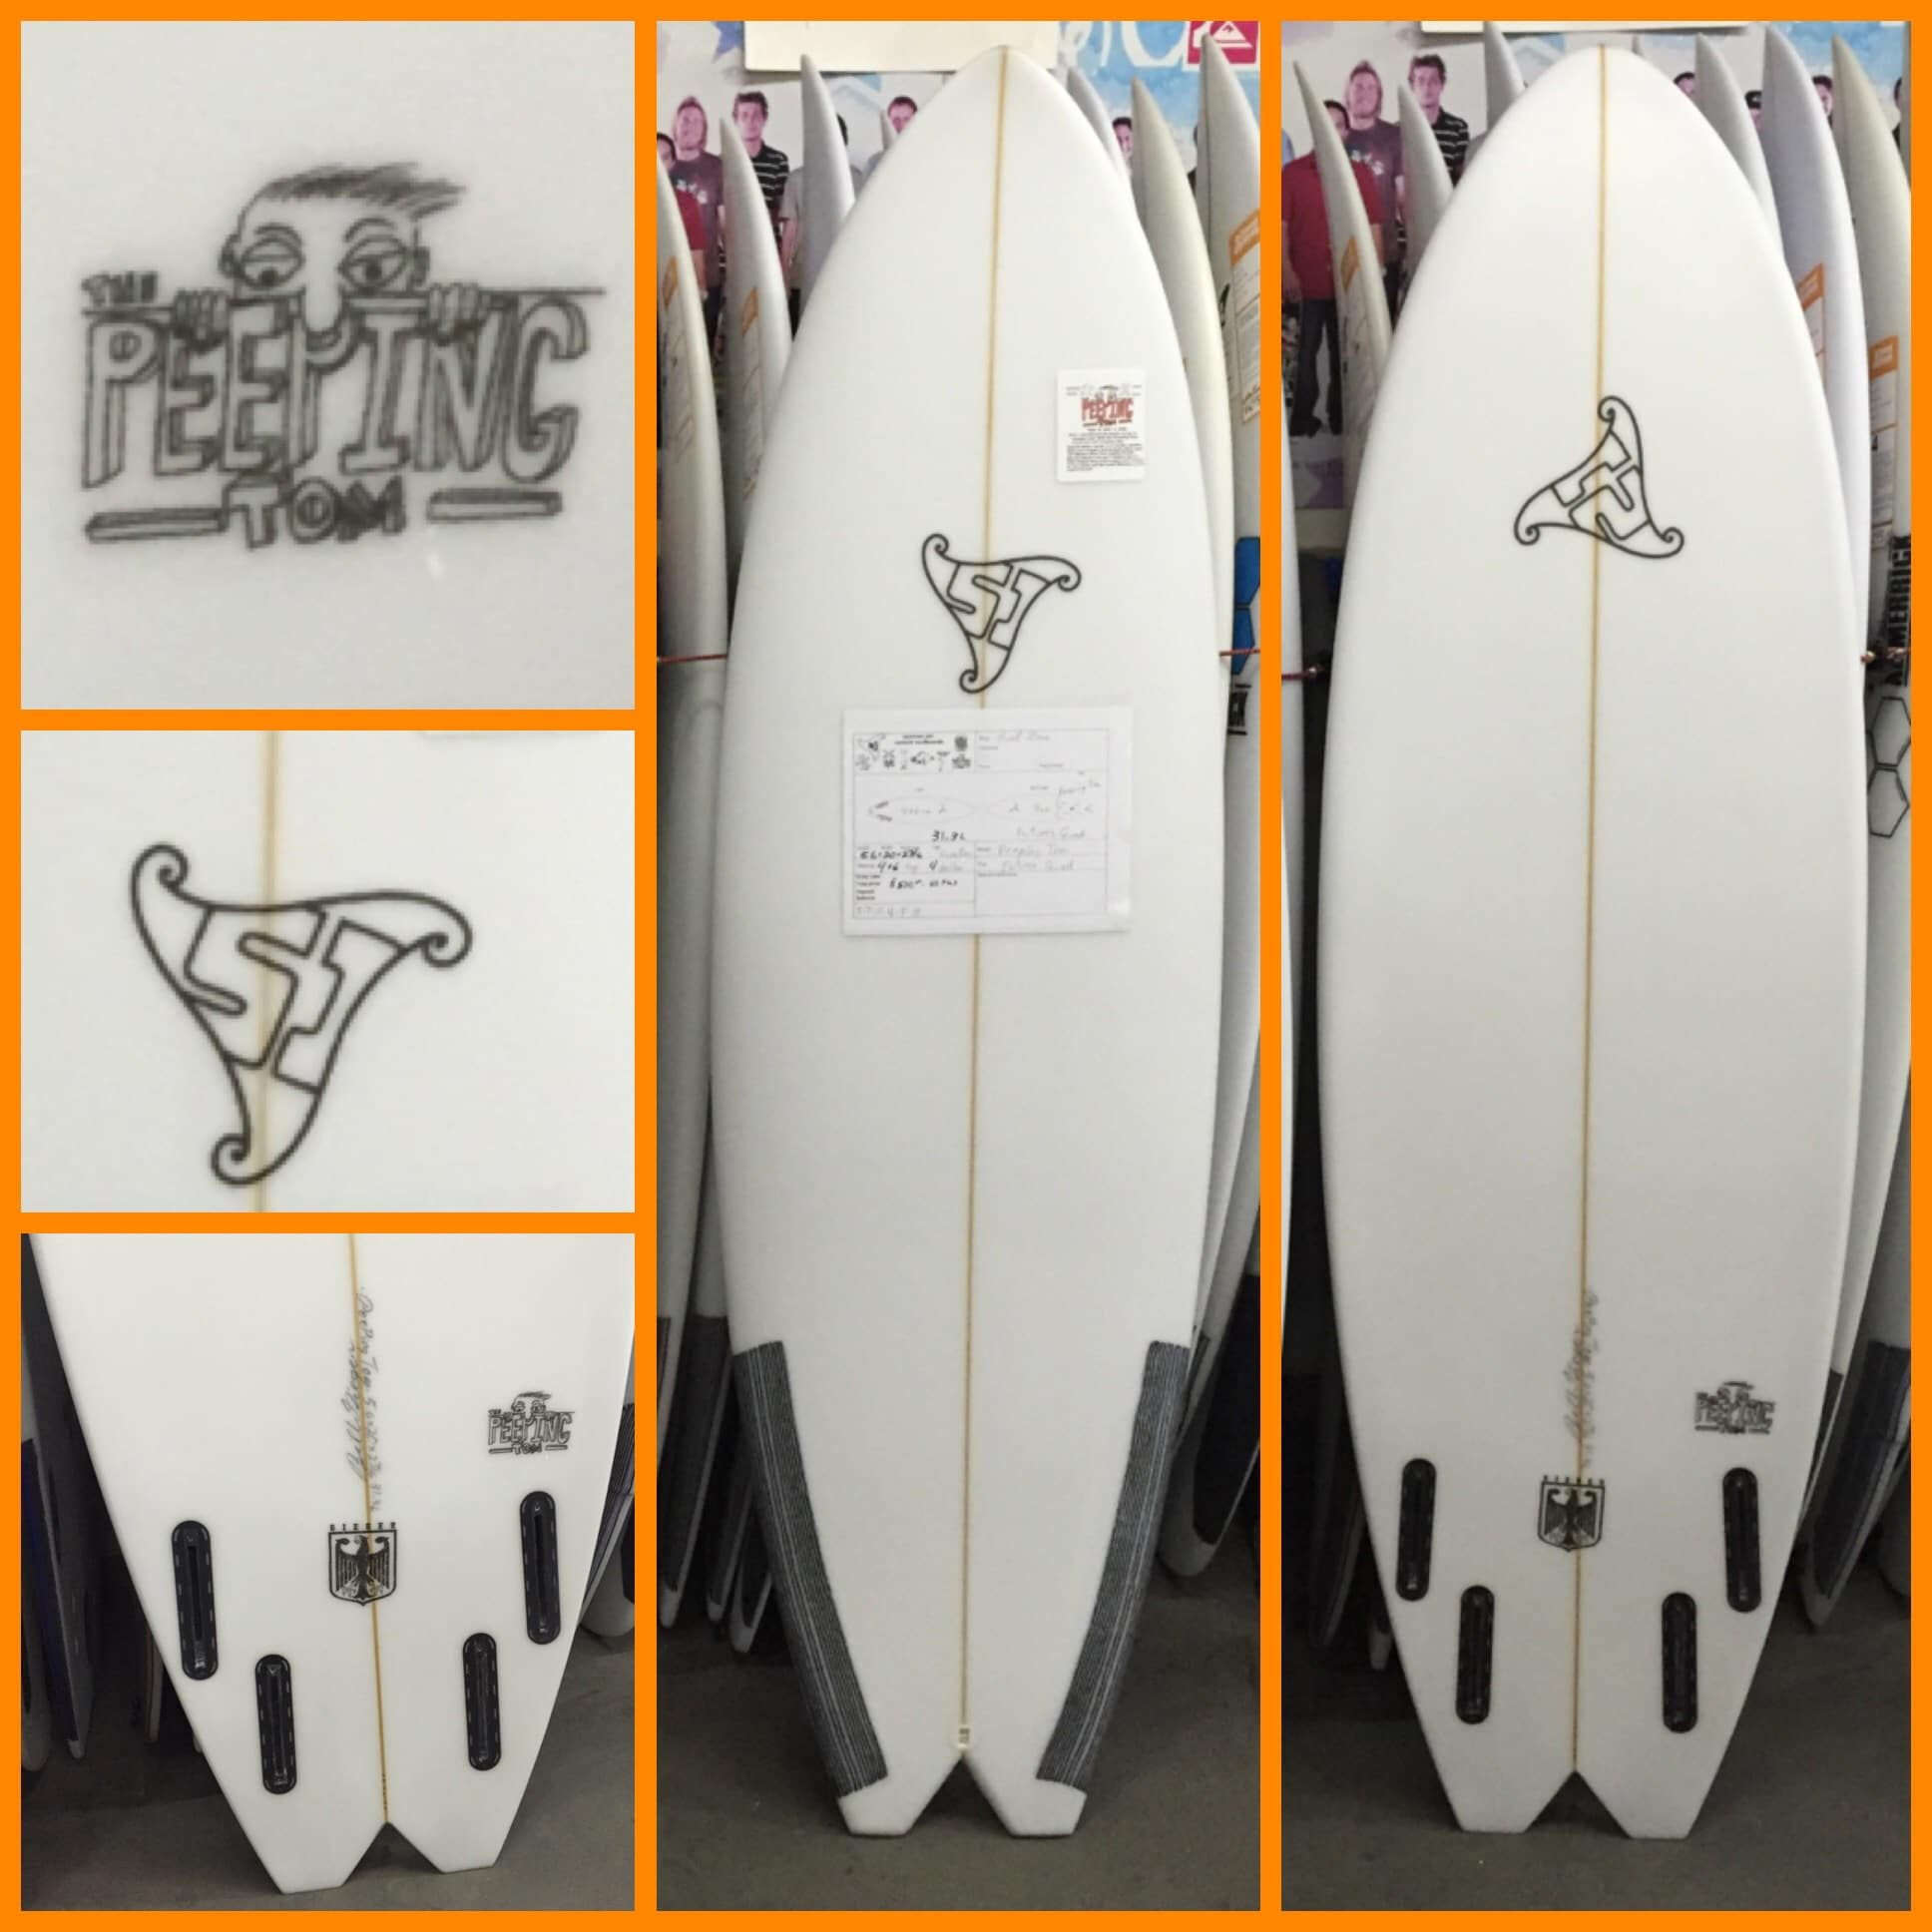 "Summer Jet Peeping Tom (5'6"" x 20"" x 2 7/16"" 31.3L) Swallo Tail Futures Quad"